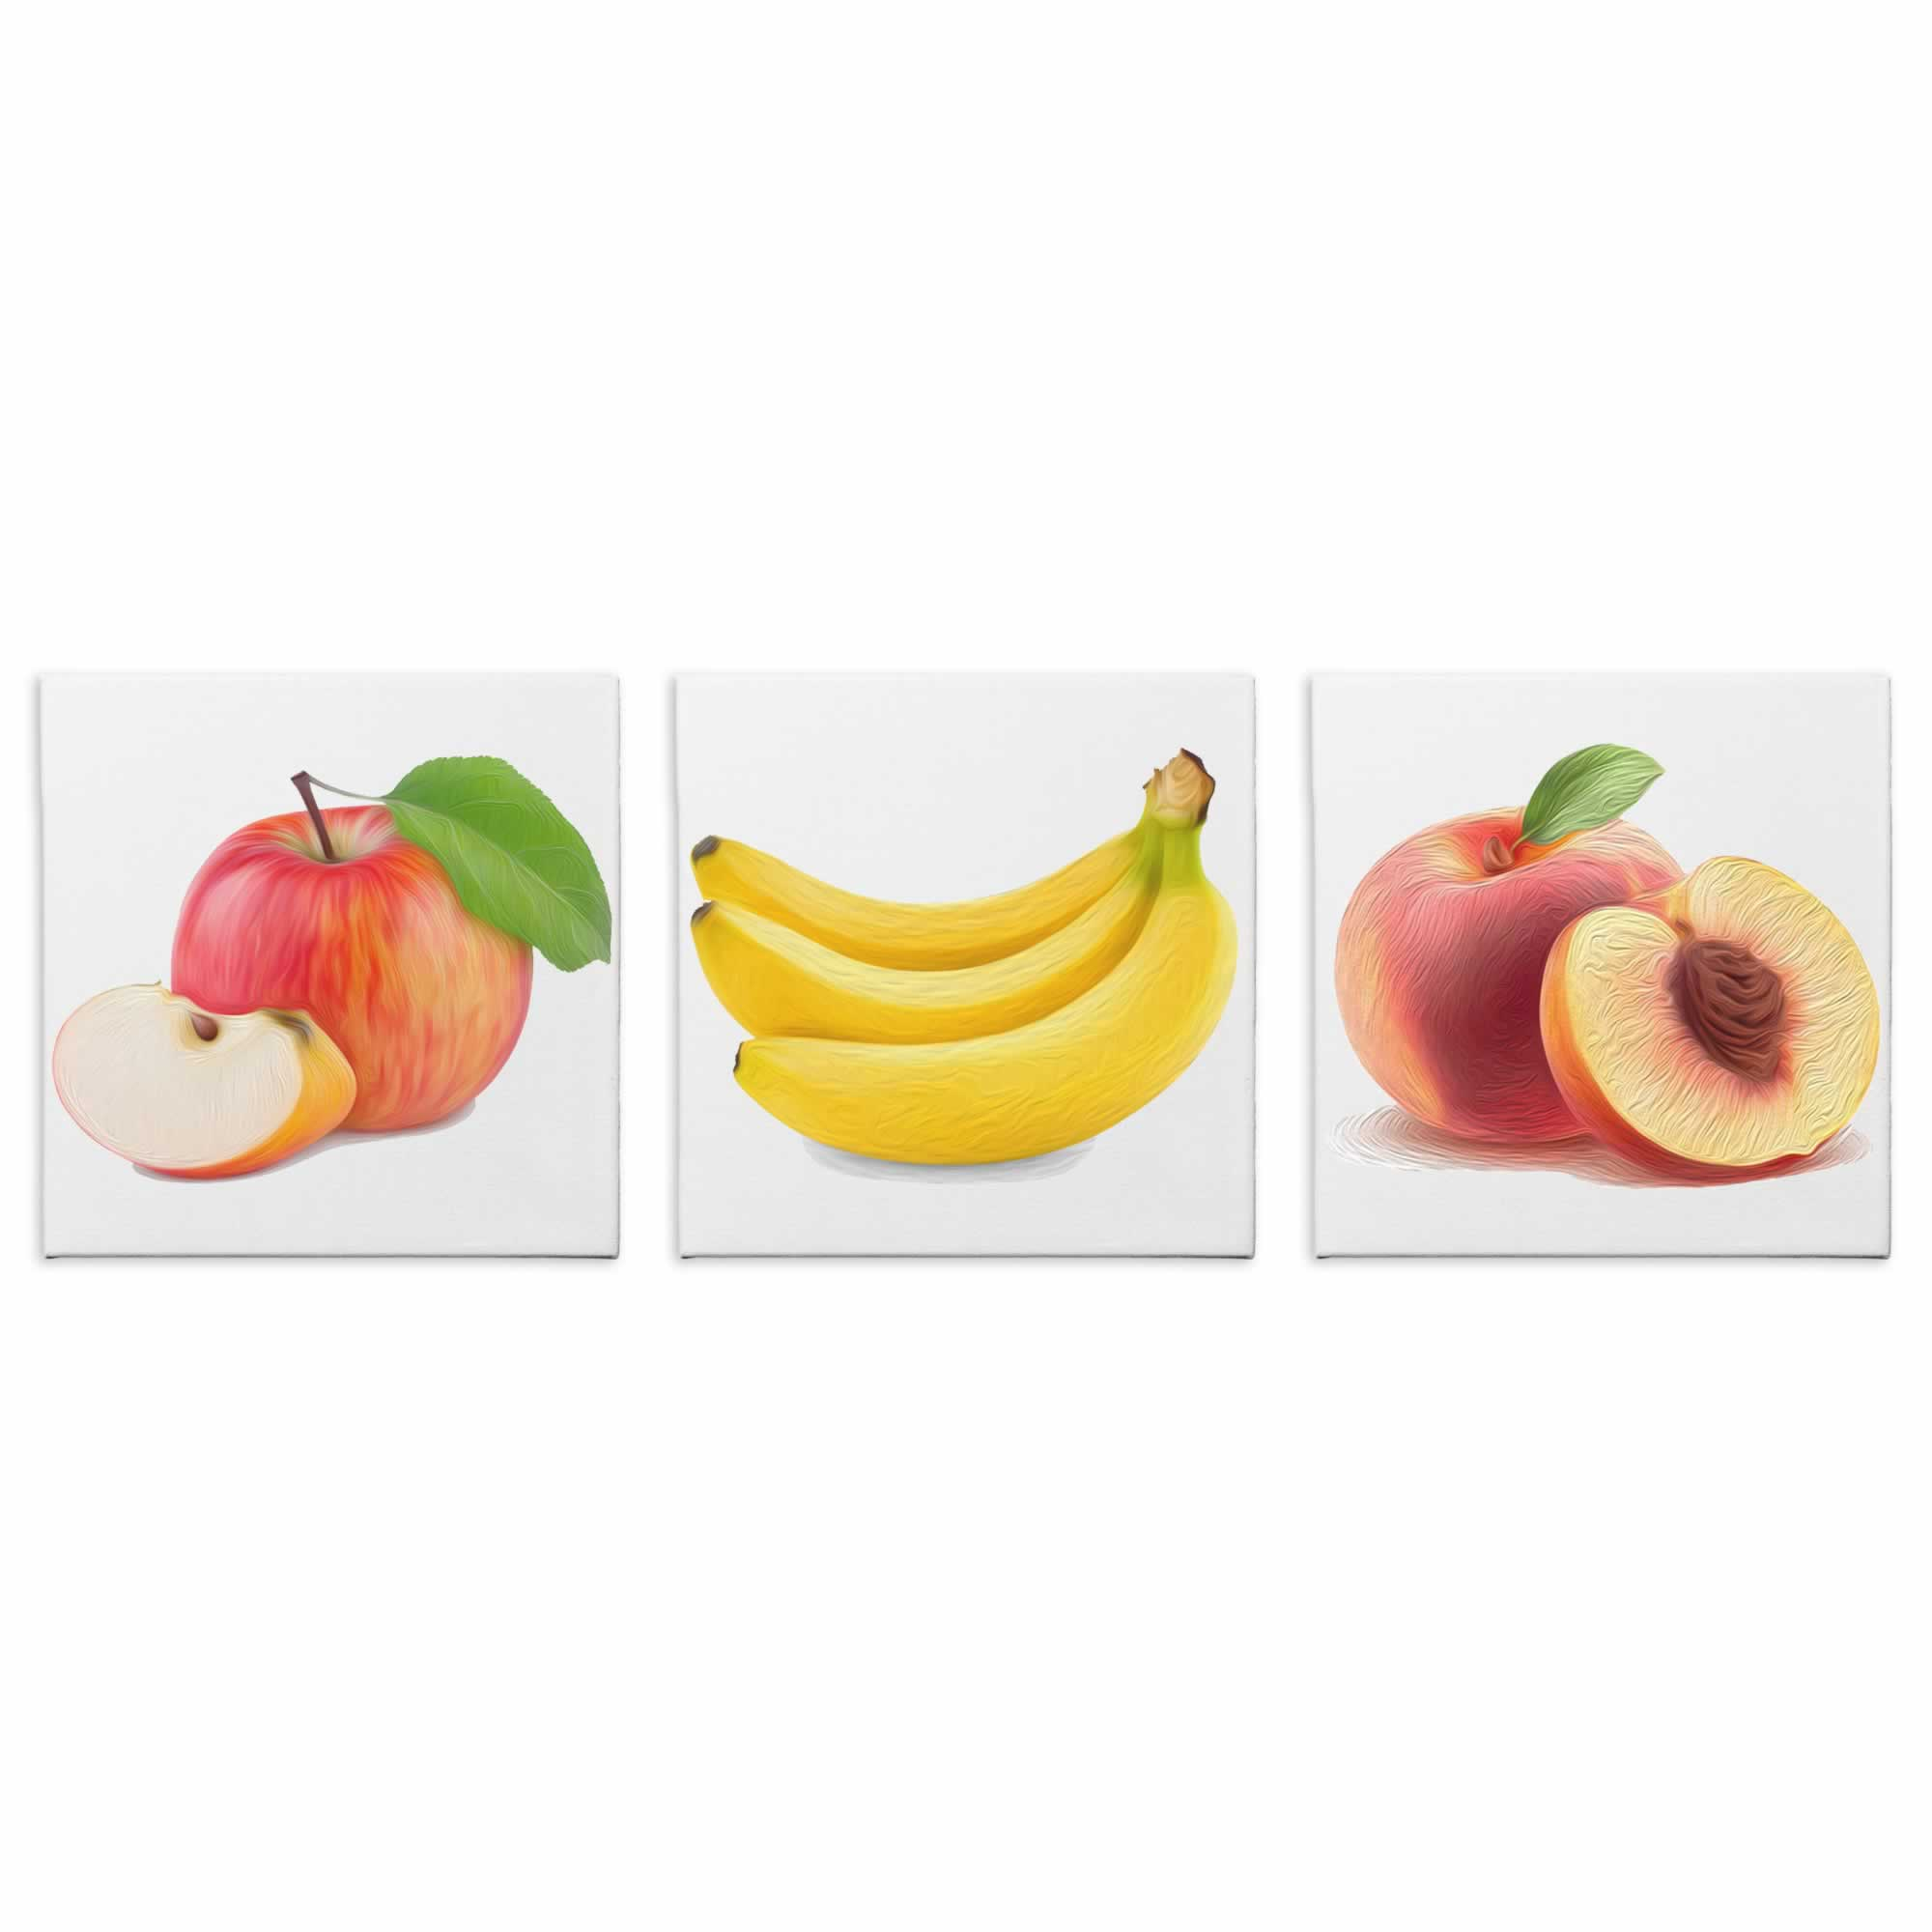 Fruit Salad - Contemporary giclee Painting Print on Canvas